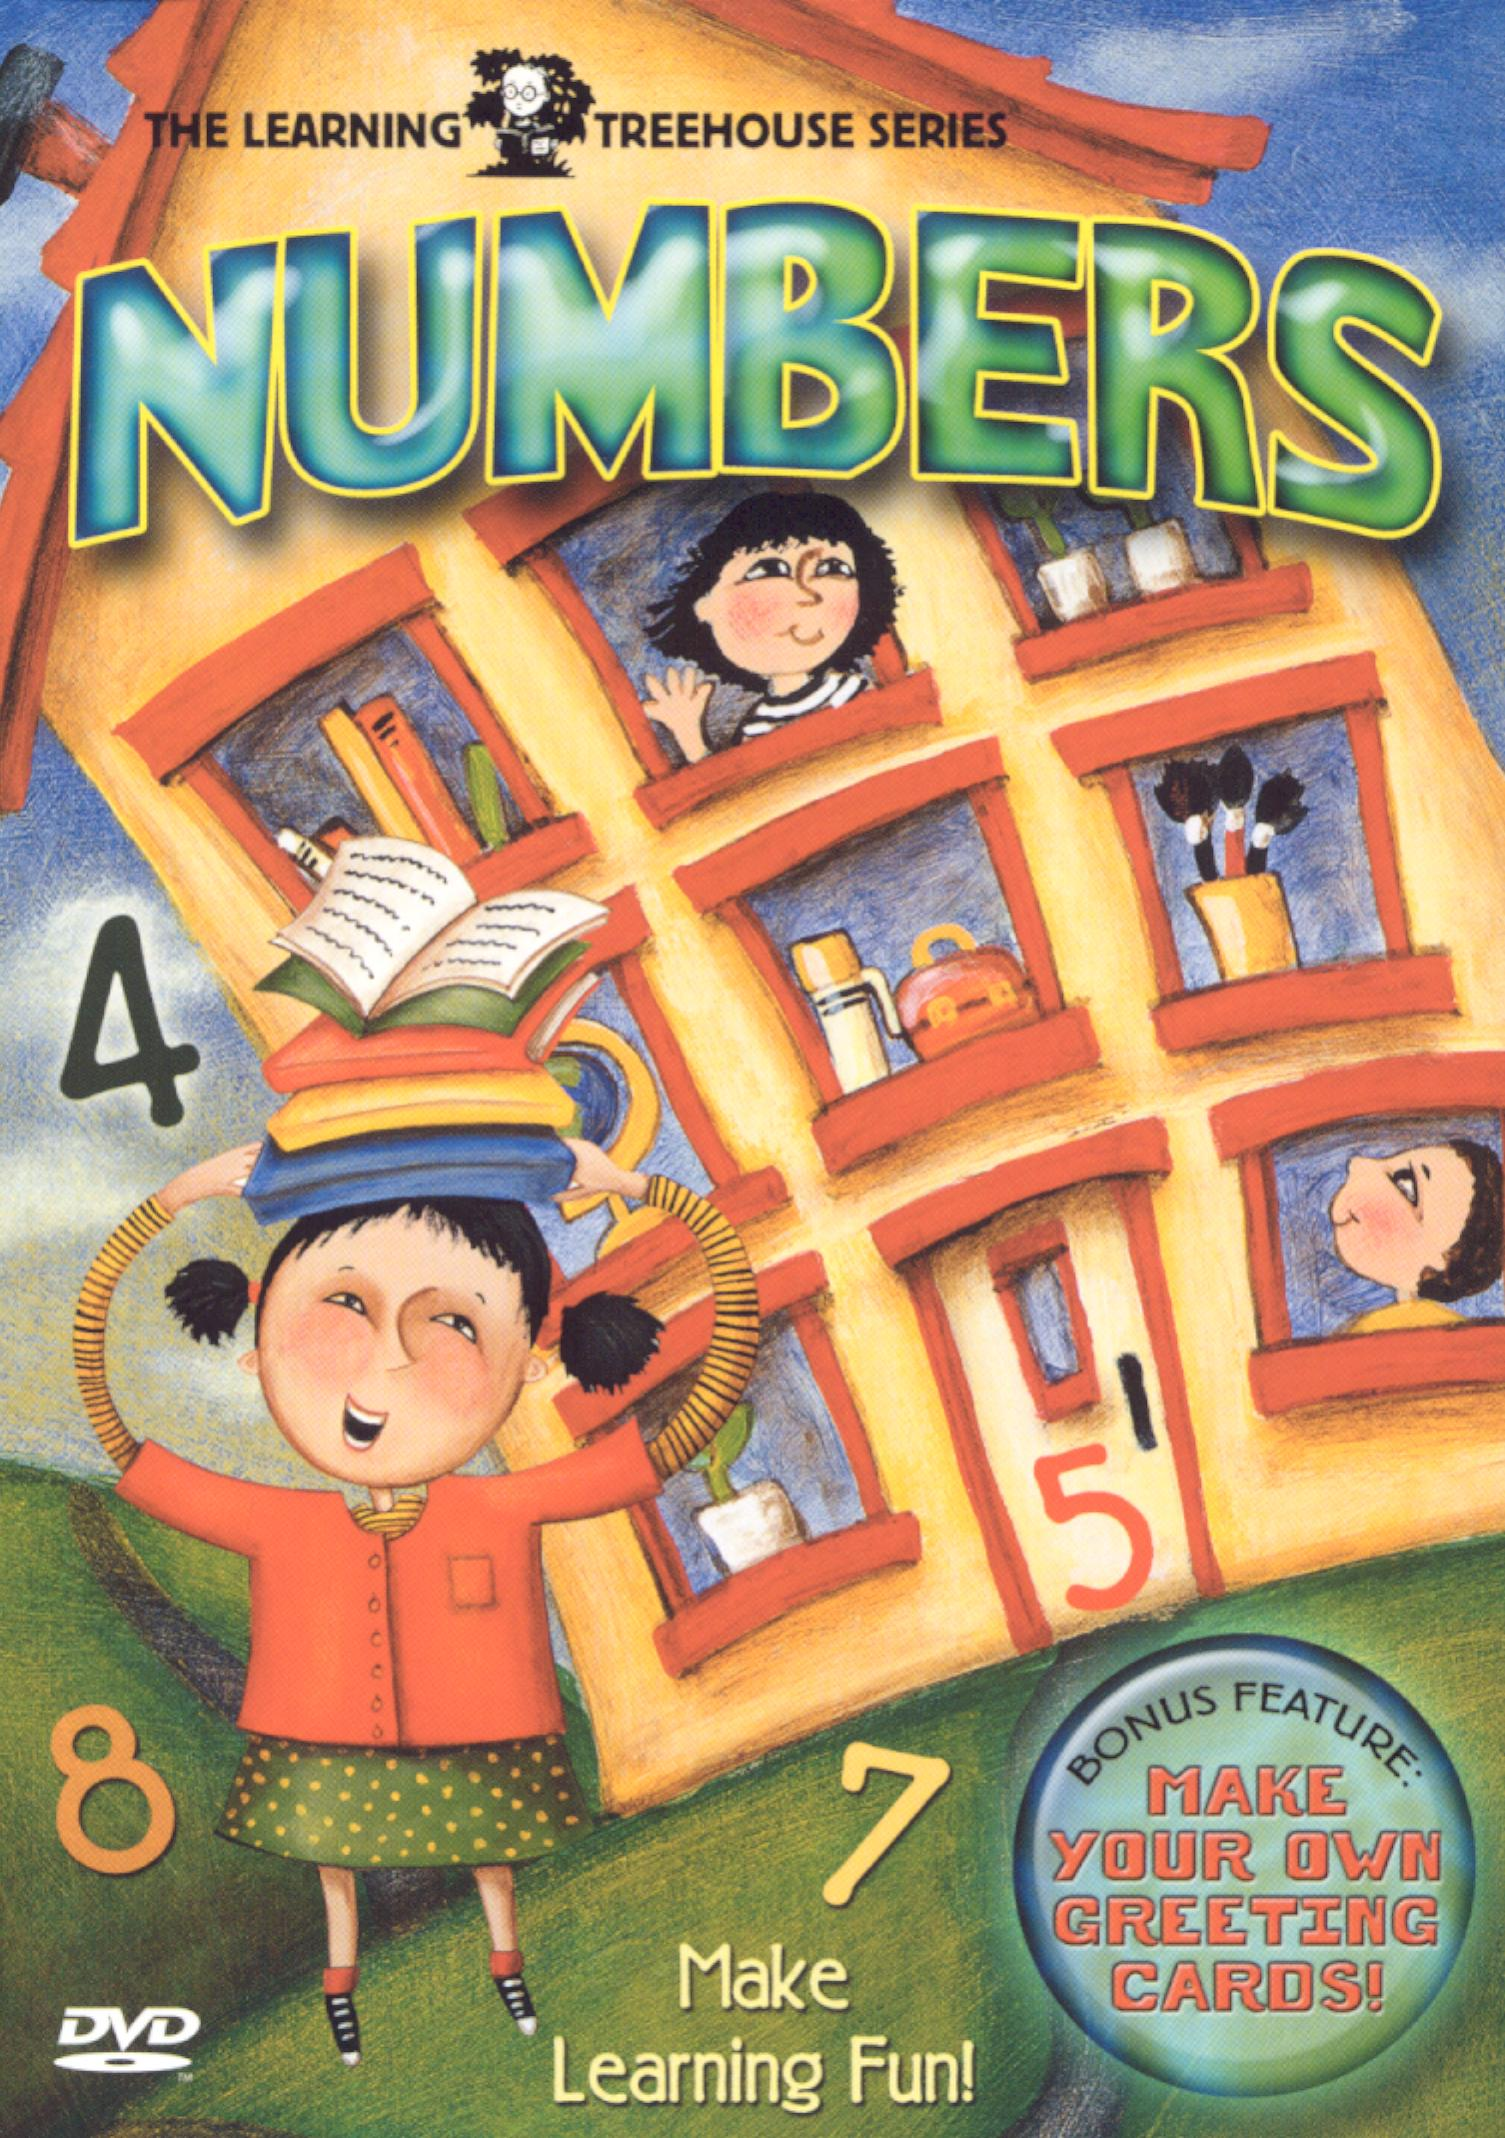 Learning Treehouse: Numbers